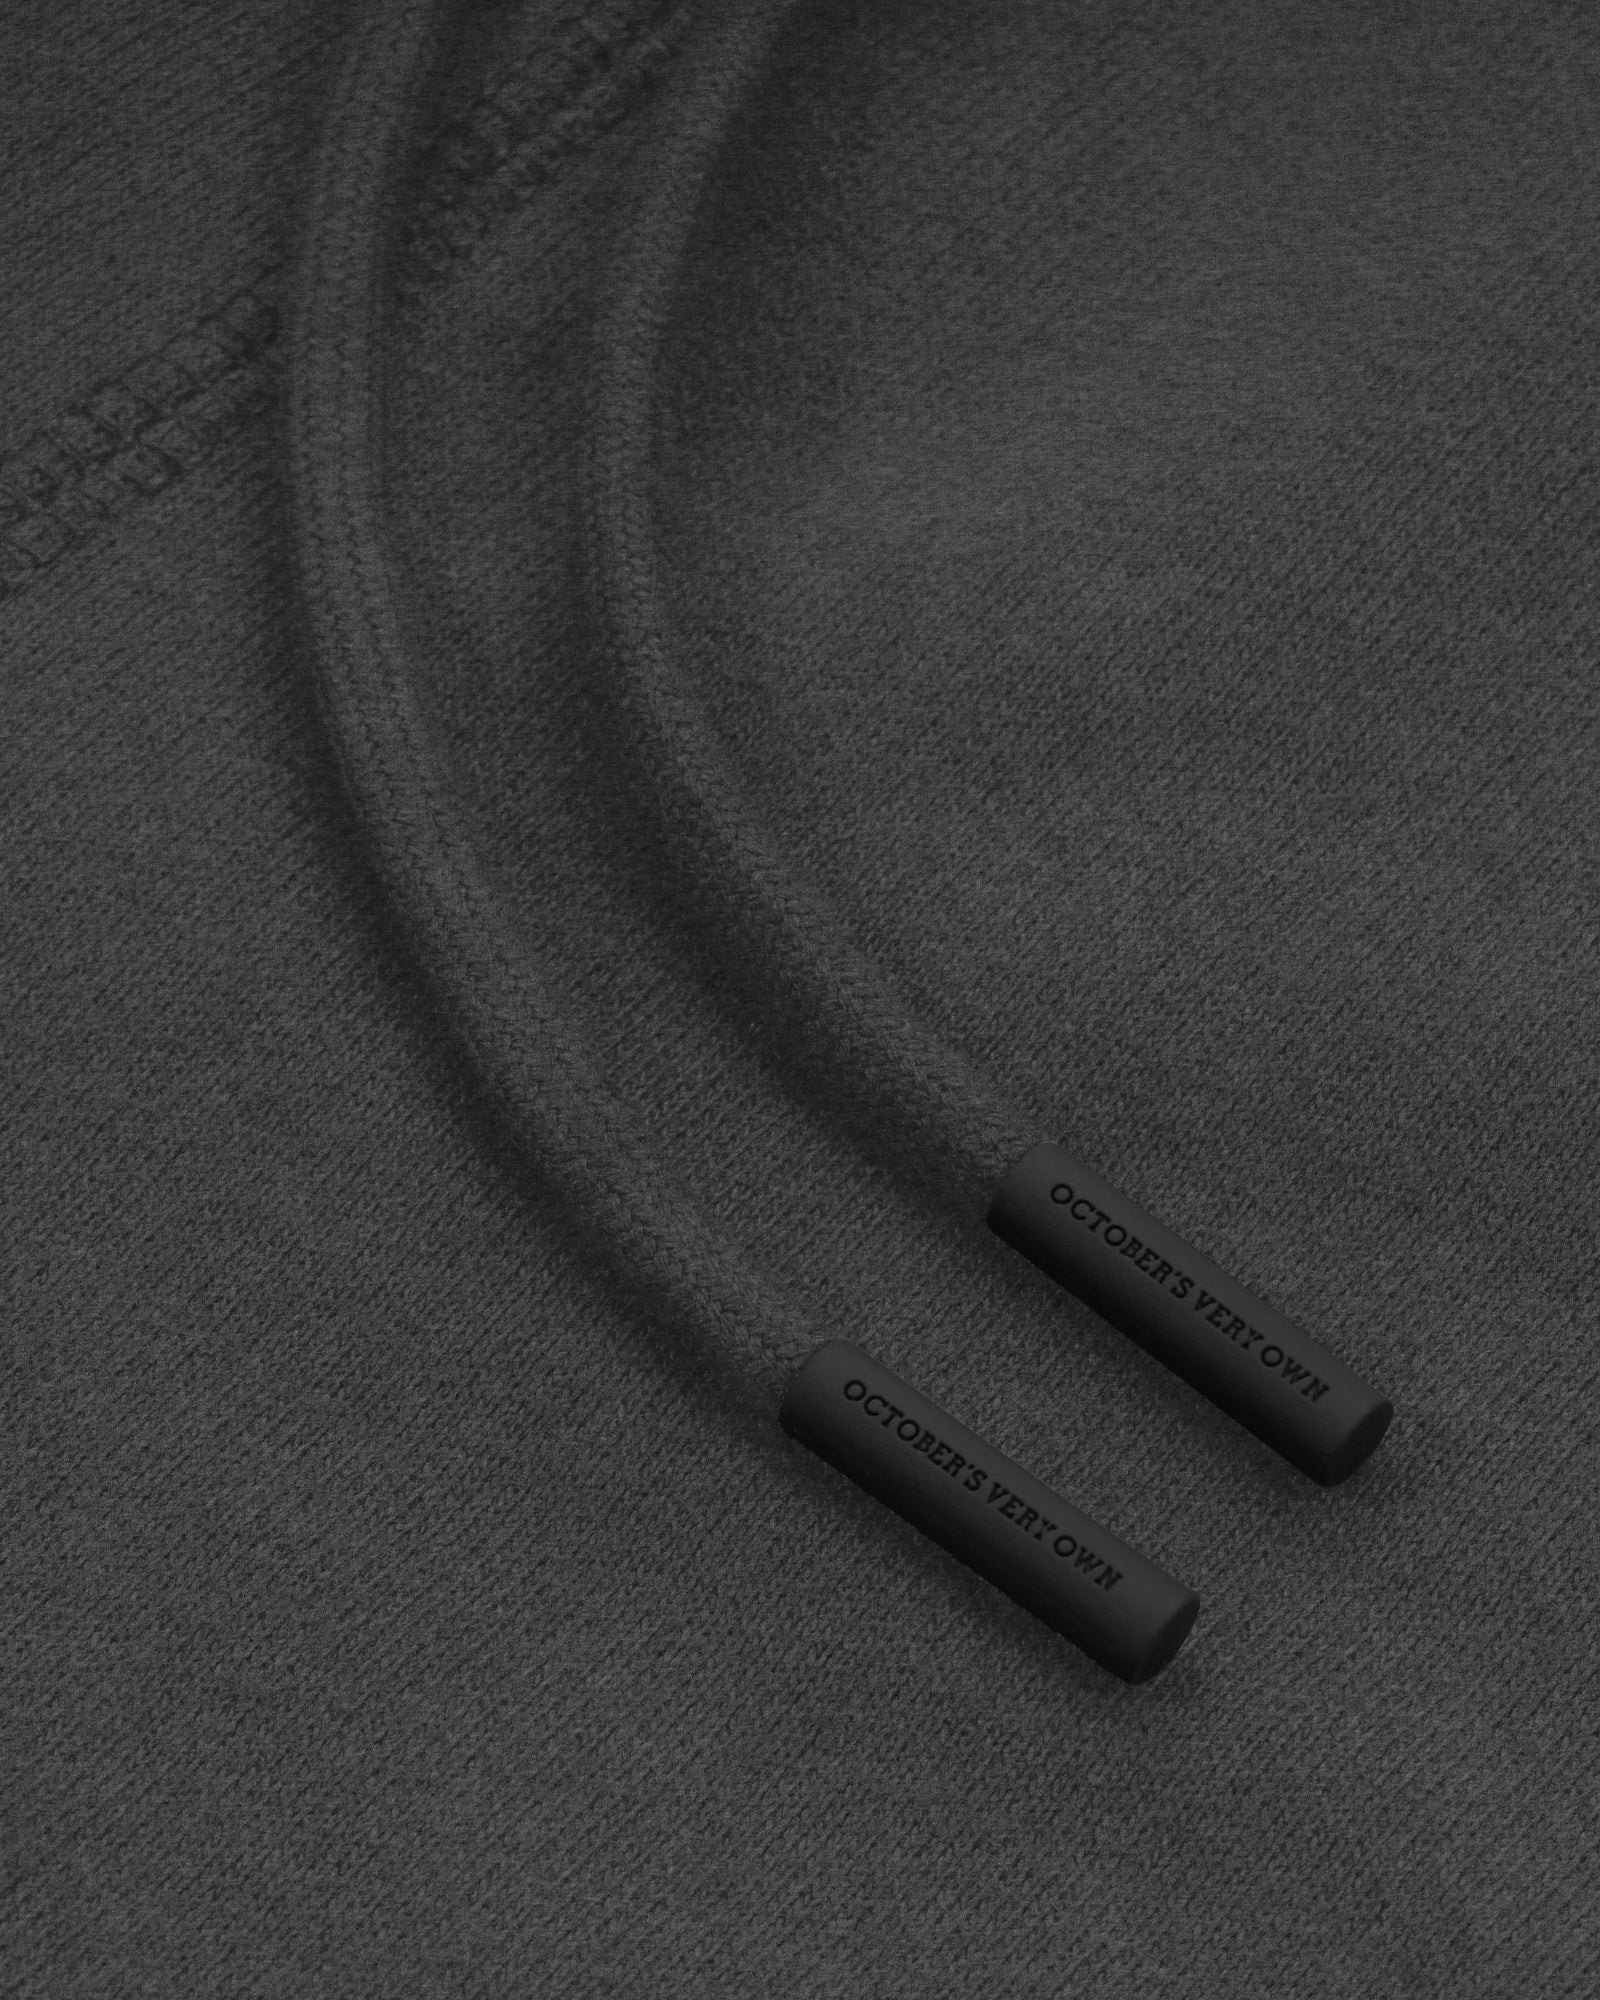 MID-WEIGHT FRENCH TERRY SWEATPANT - HEATHER CHARCOAL IMAGE #5